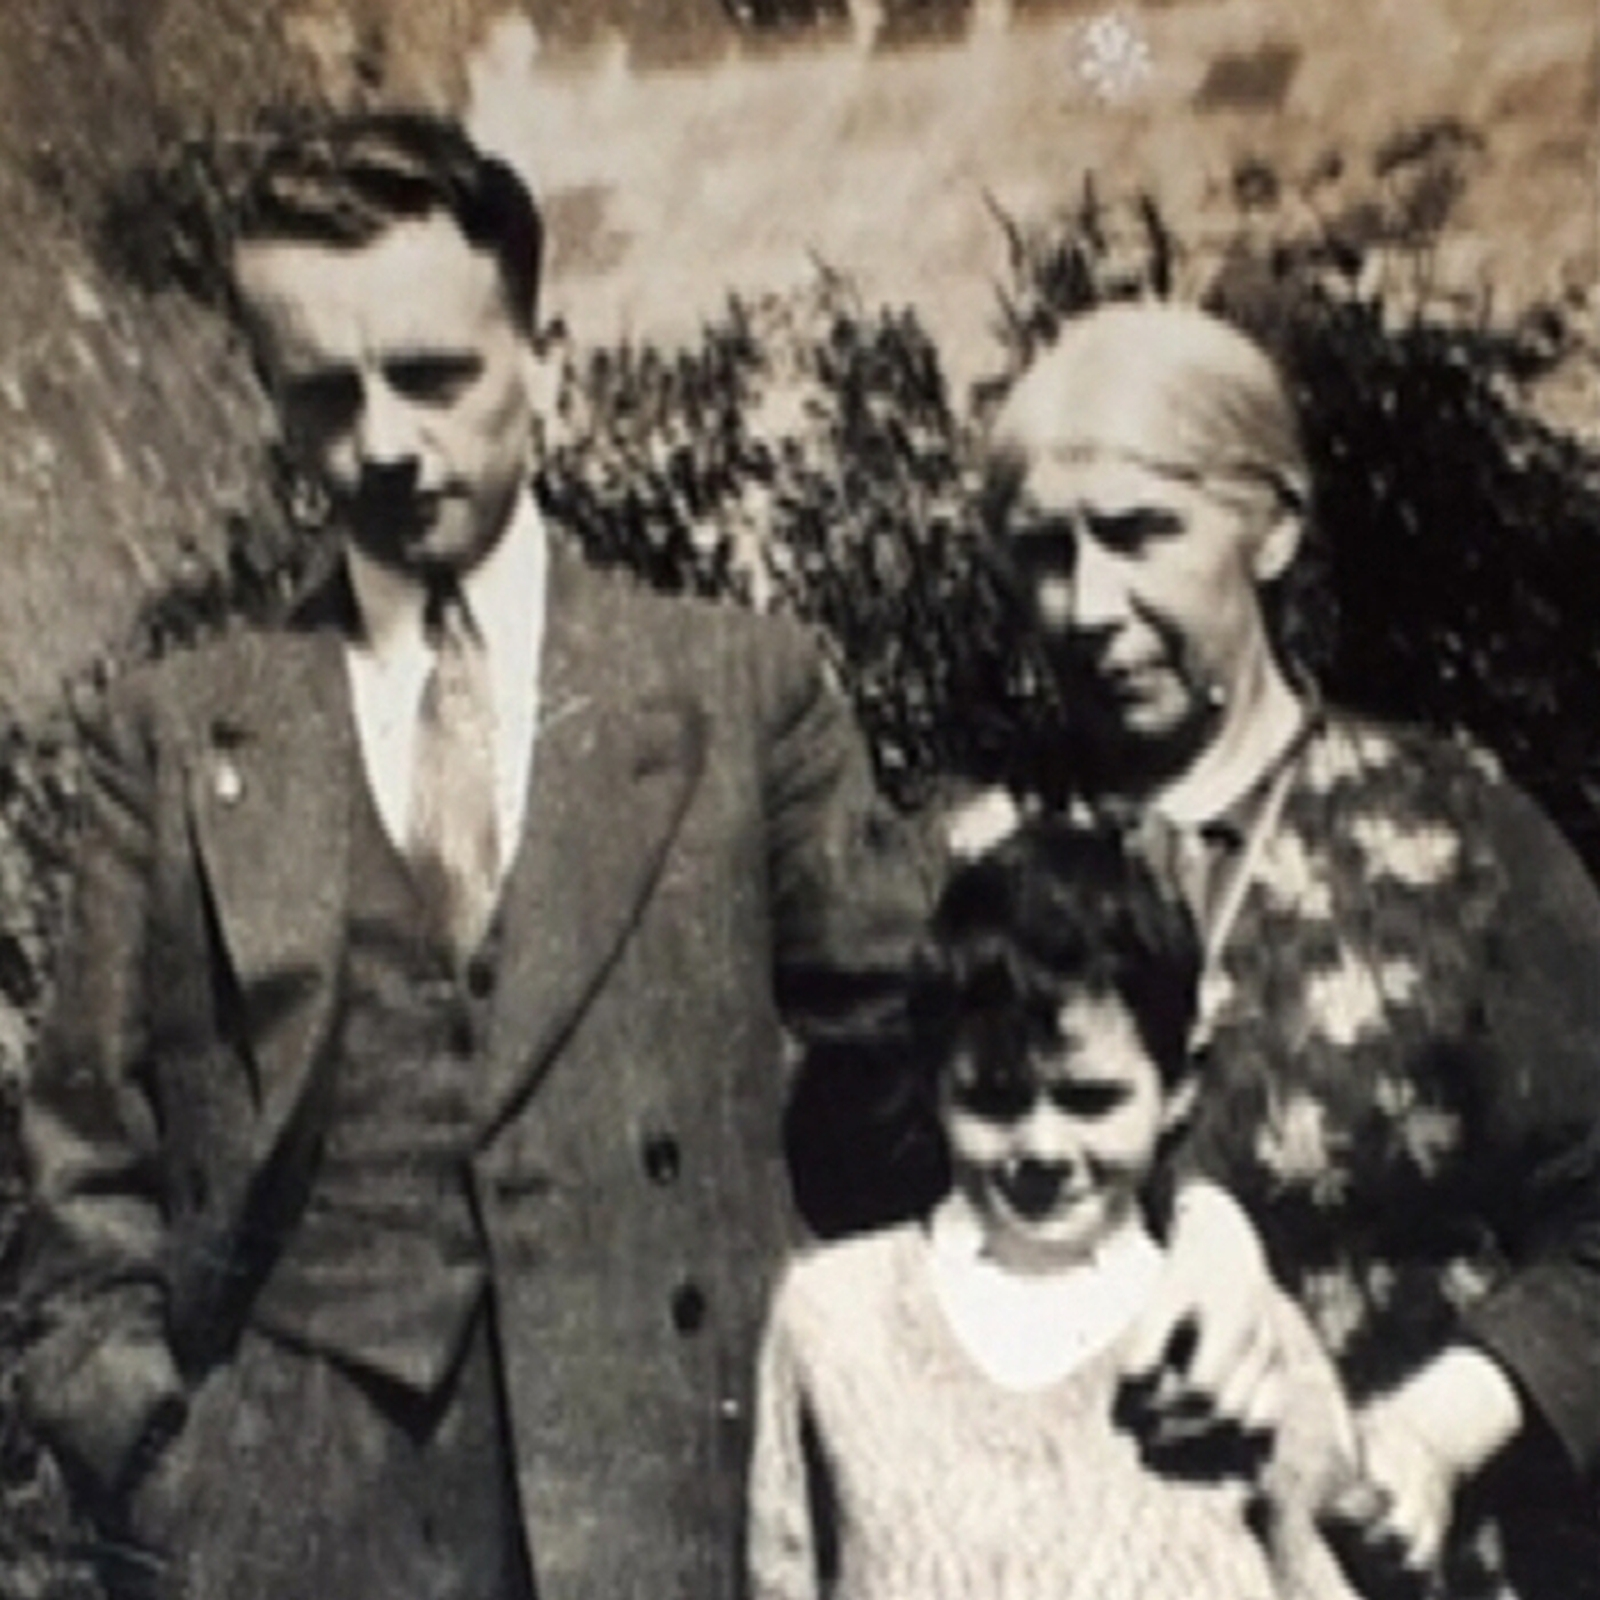 Image - Patrick O'Connell - believed to be the man in this family photograph